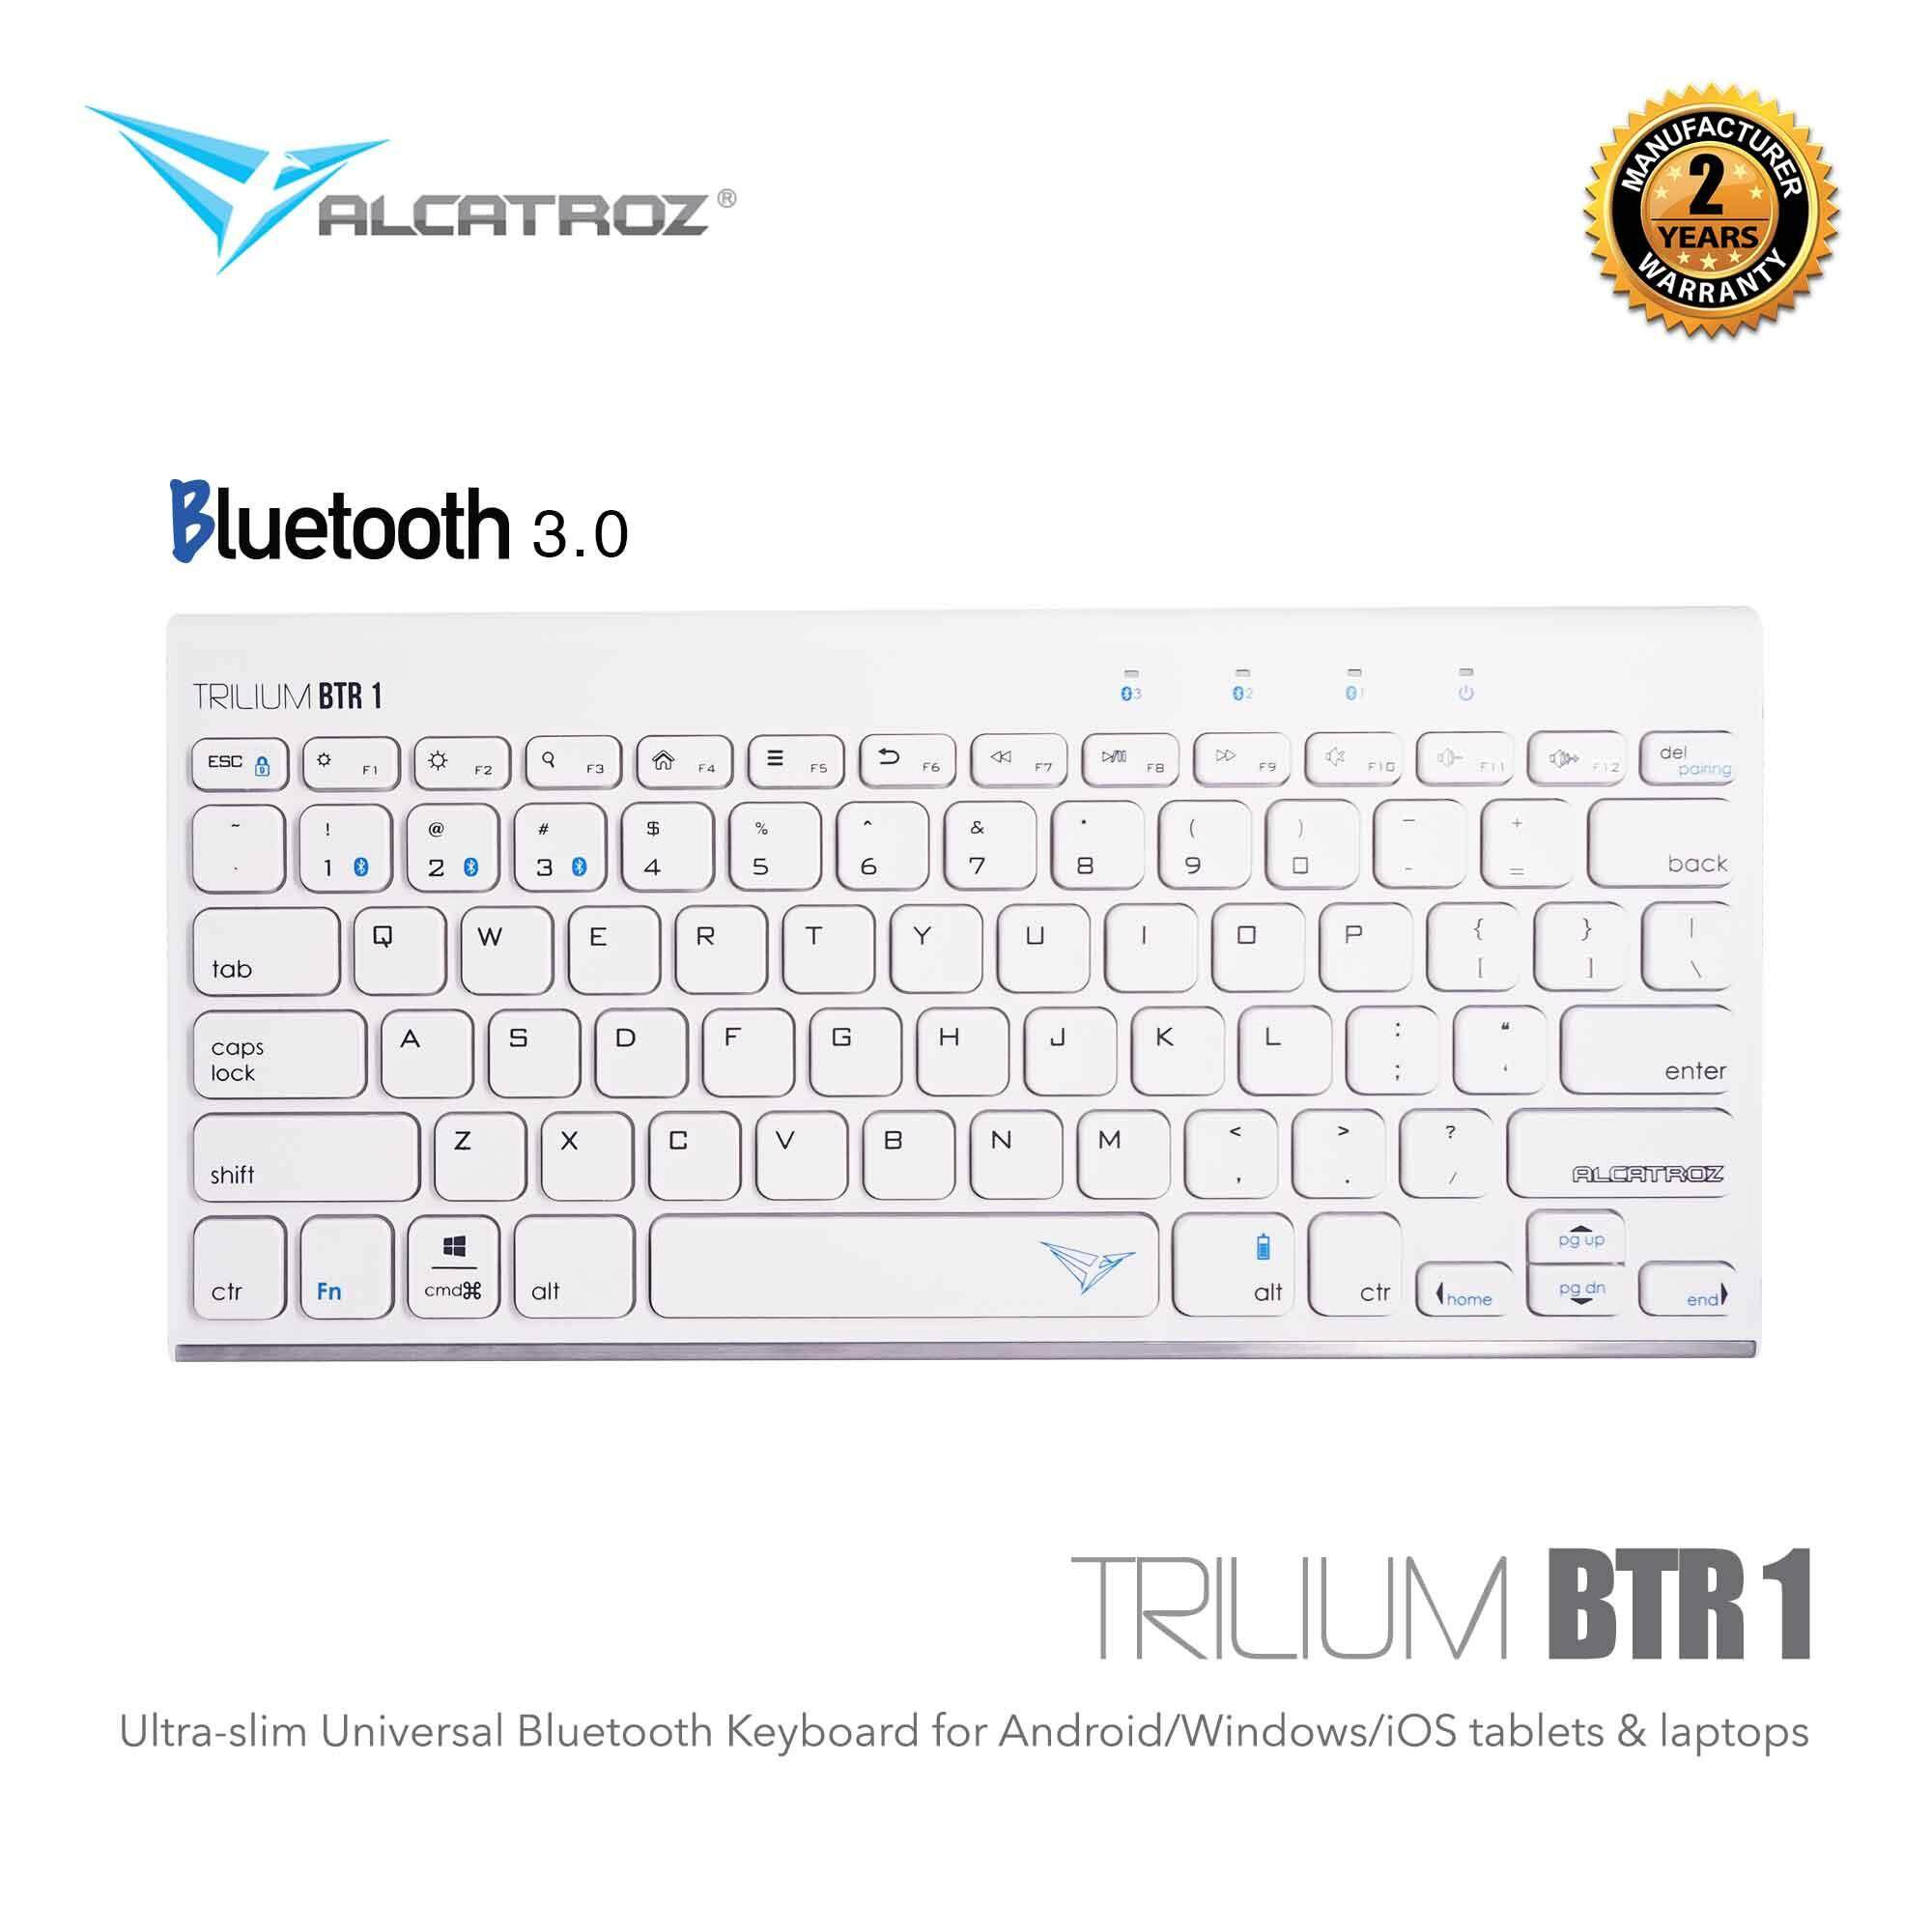 Alcatroz Computer Accessories Keyboards Price In Malaysia Best Xplorer 7770 Lfx Keyboard Mouse Trilium Btr 1 Ultra Slim Universal Bluetooth For Smartphones Tablets Laptops